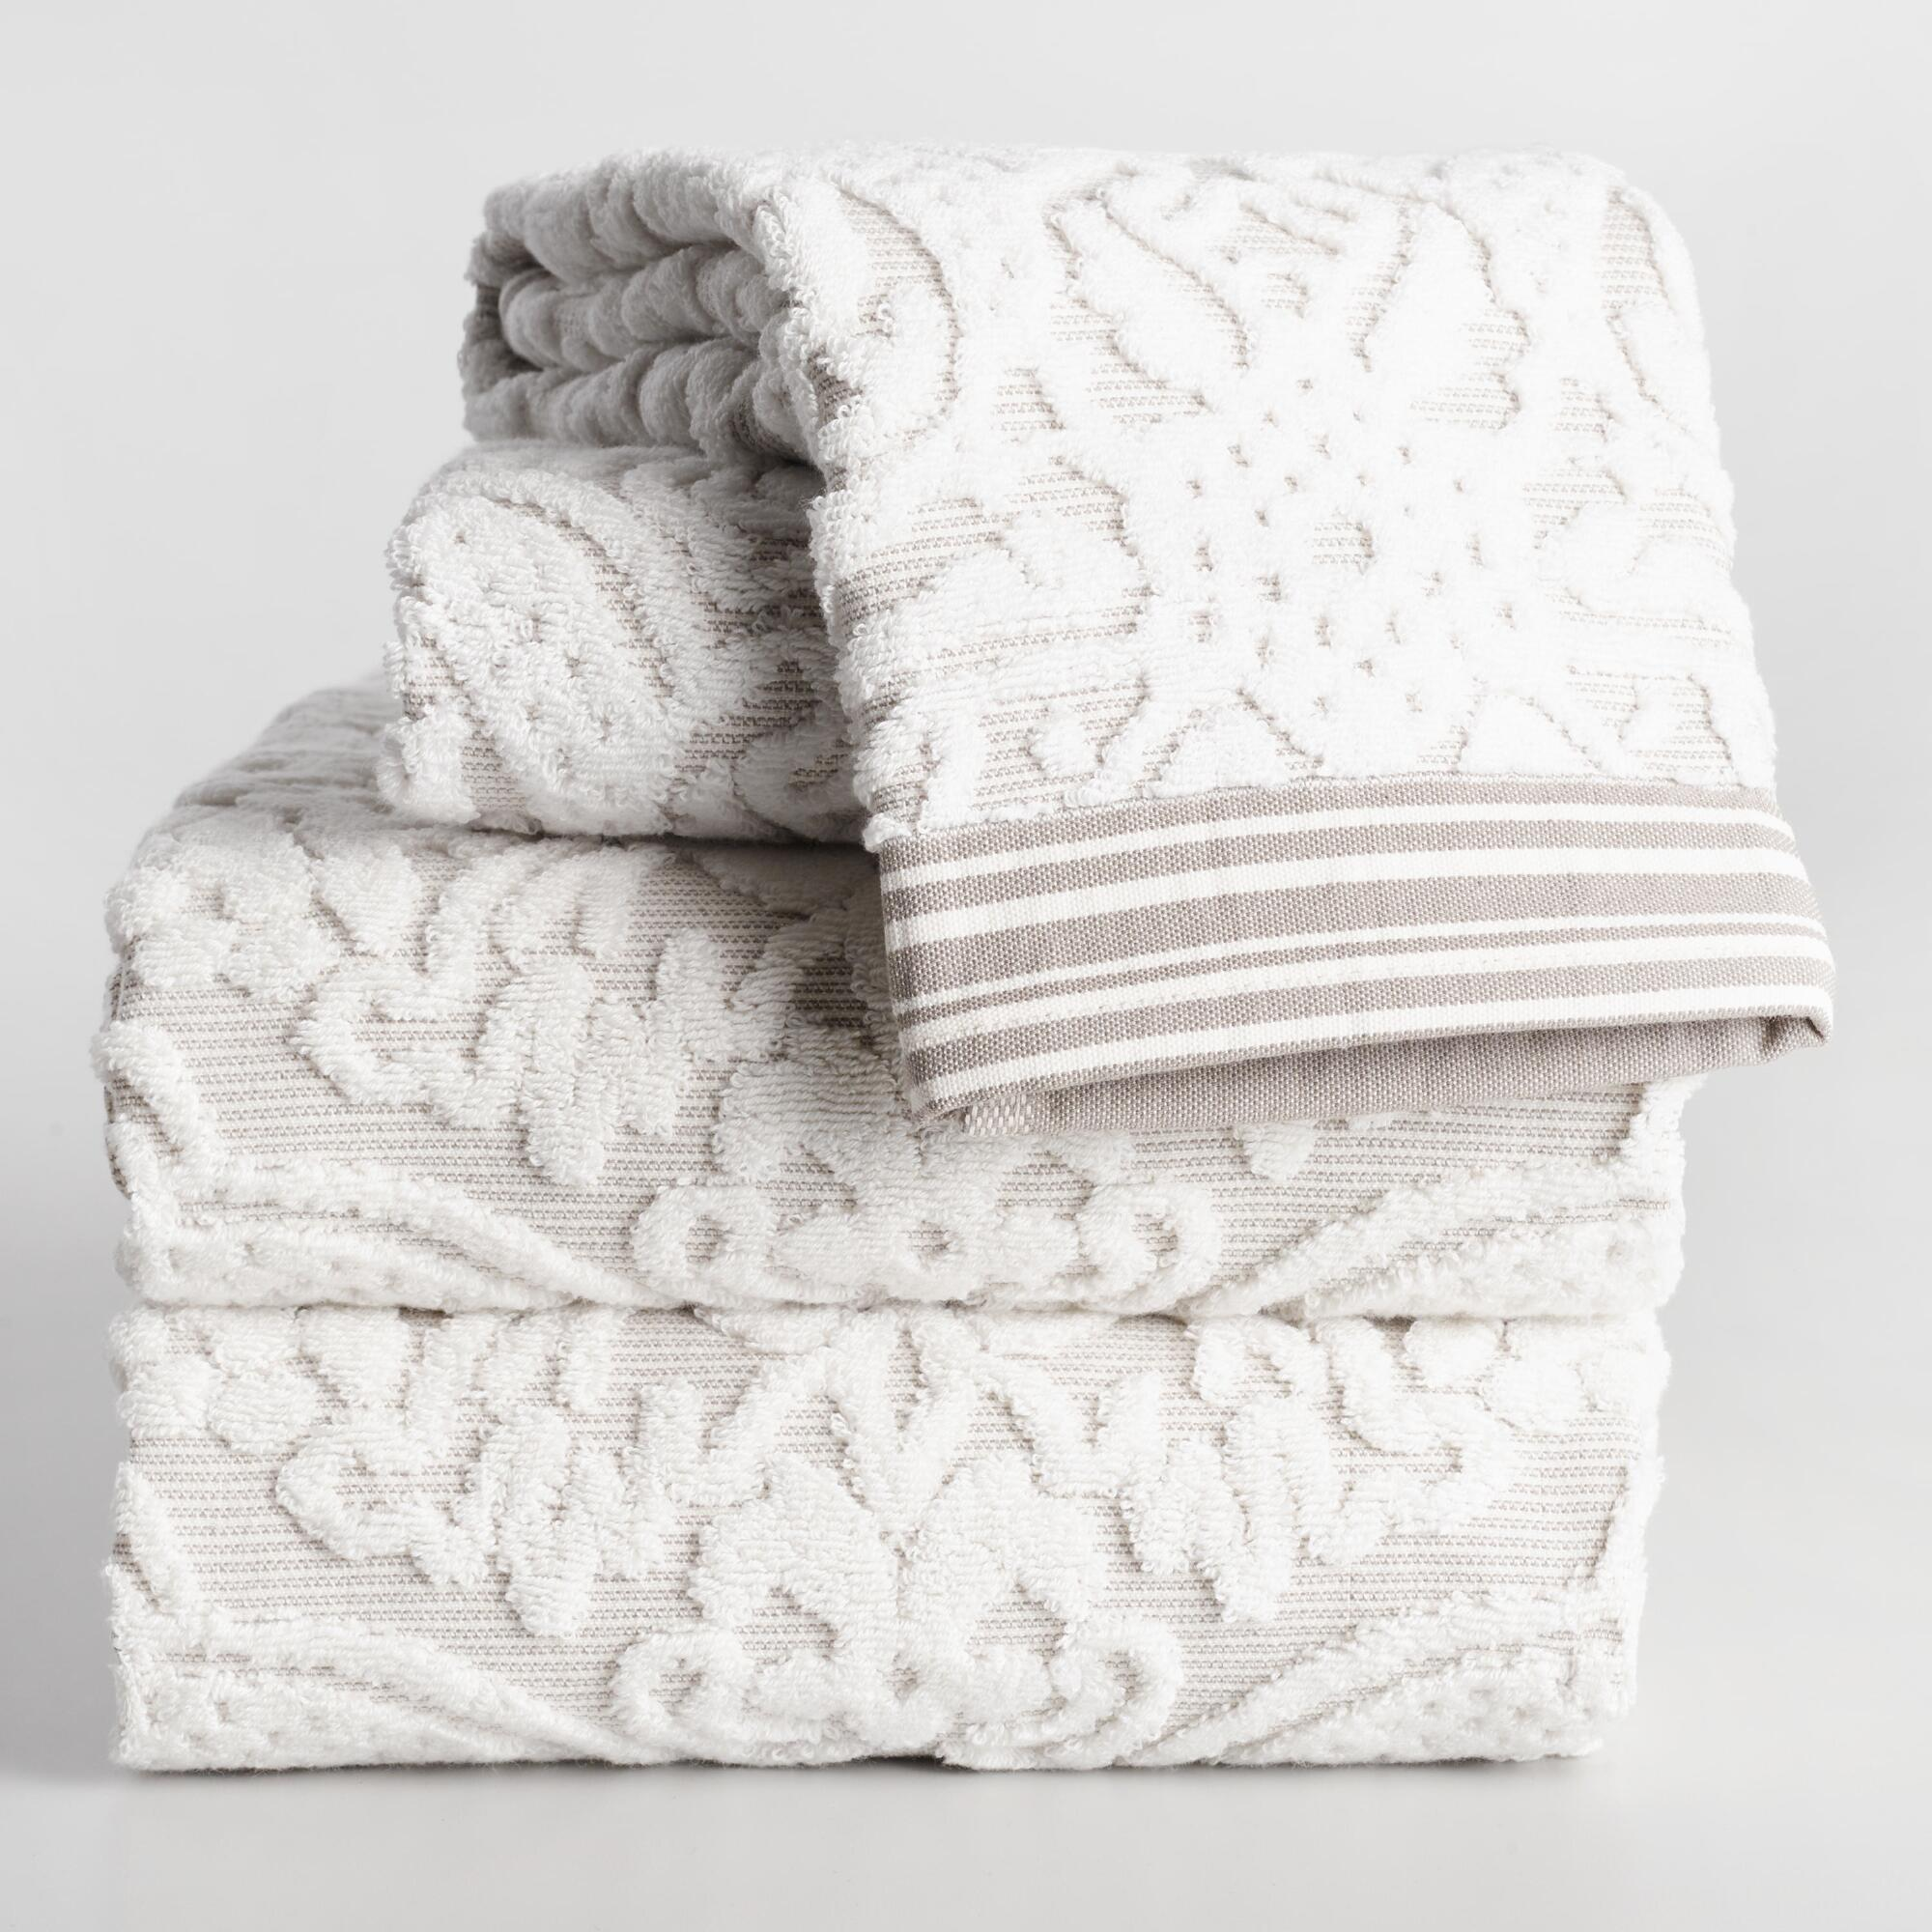 Taupe Christina Sculpted Bath Towel Collection by World Market